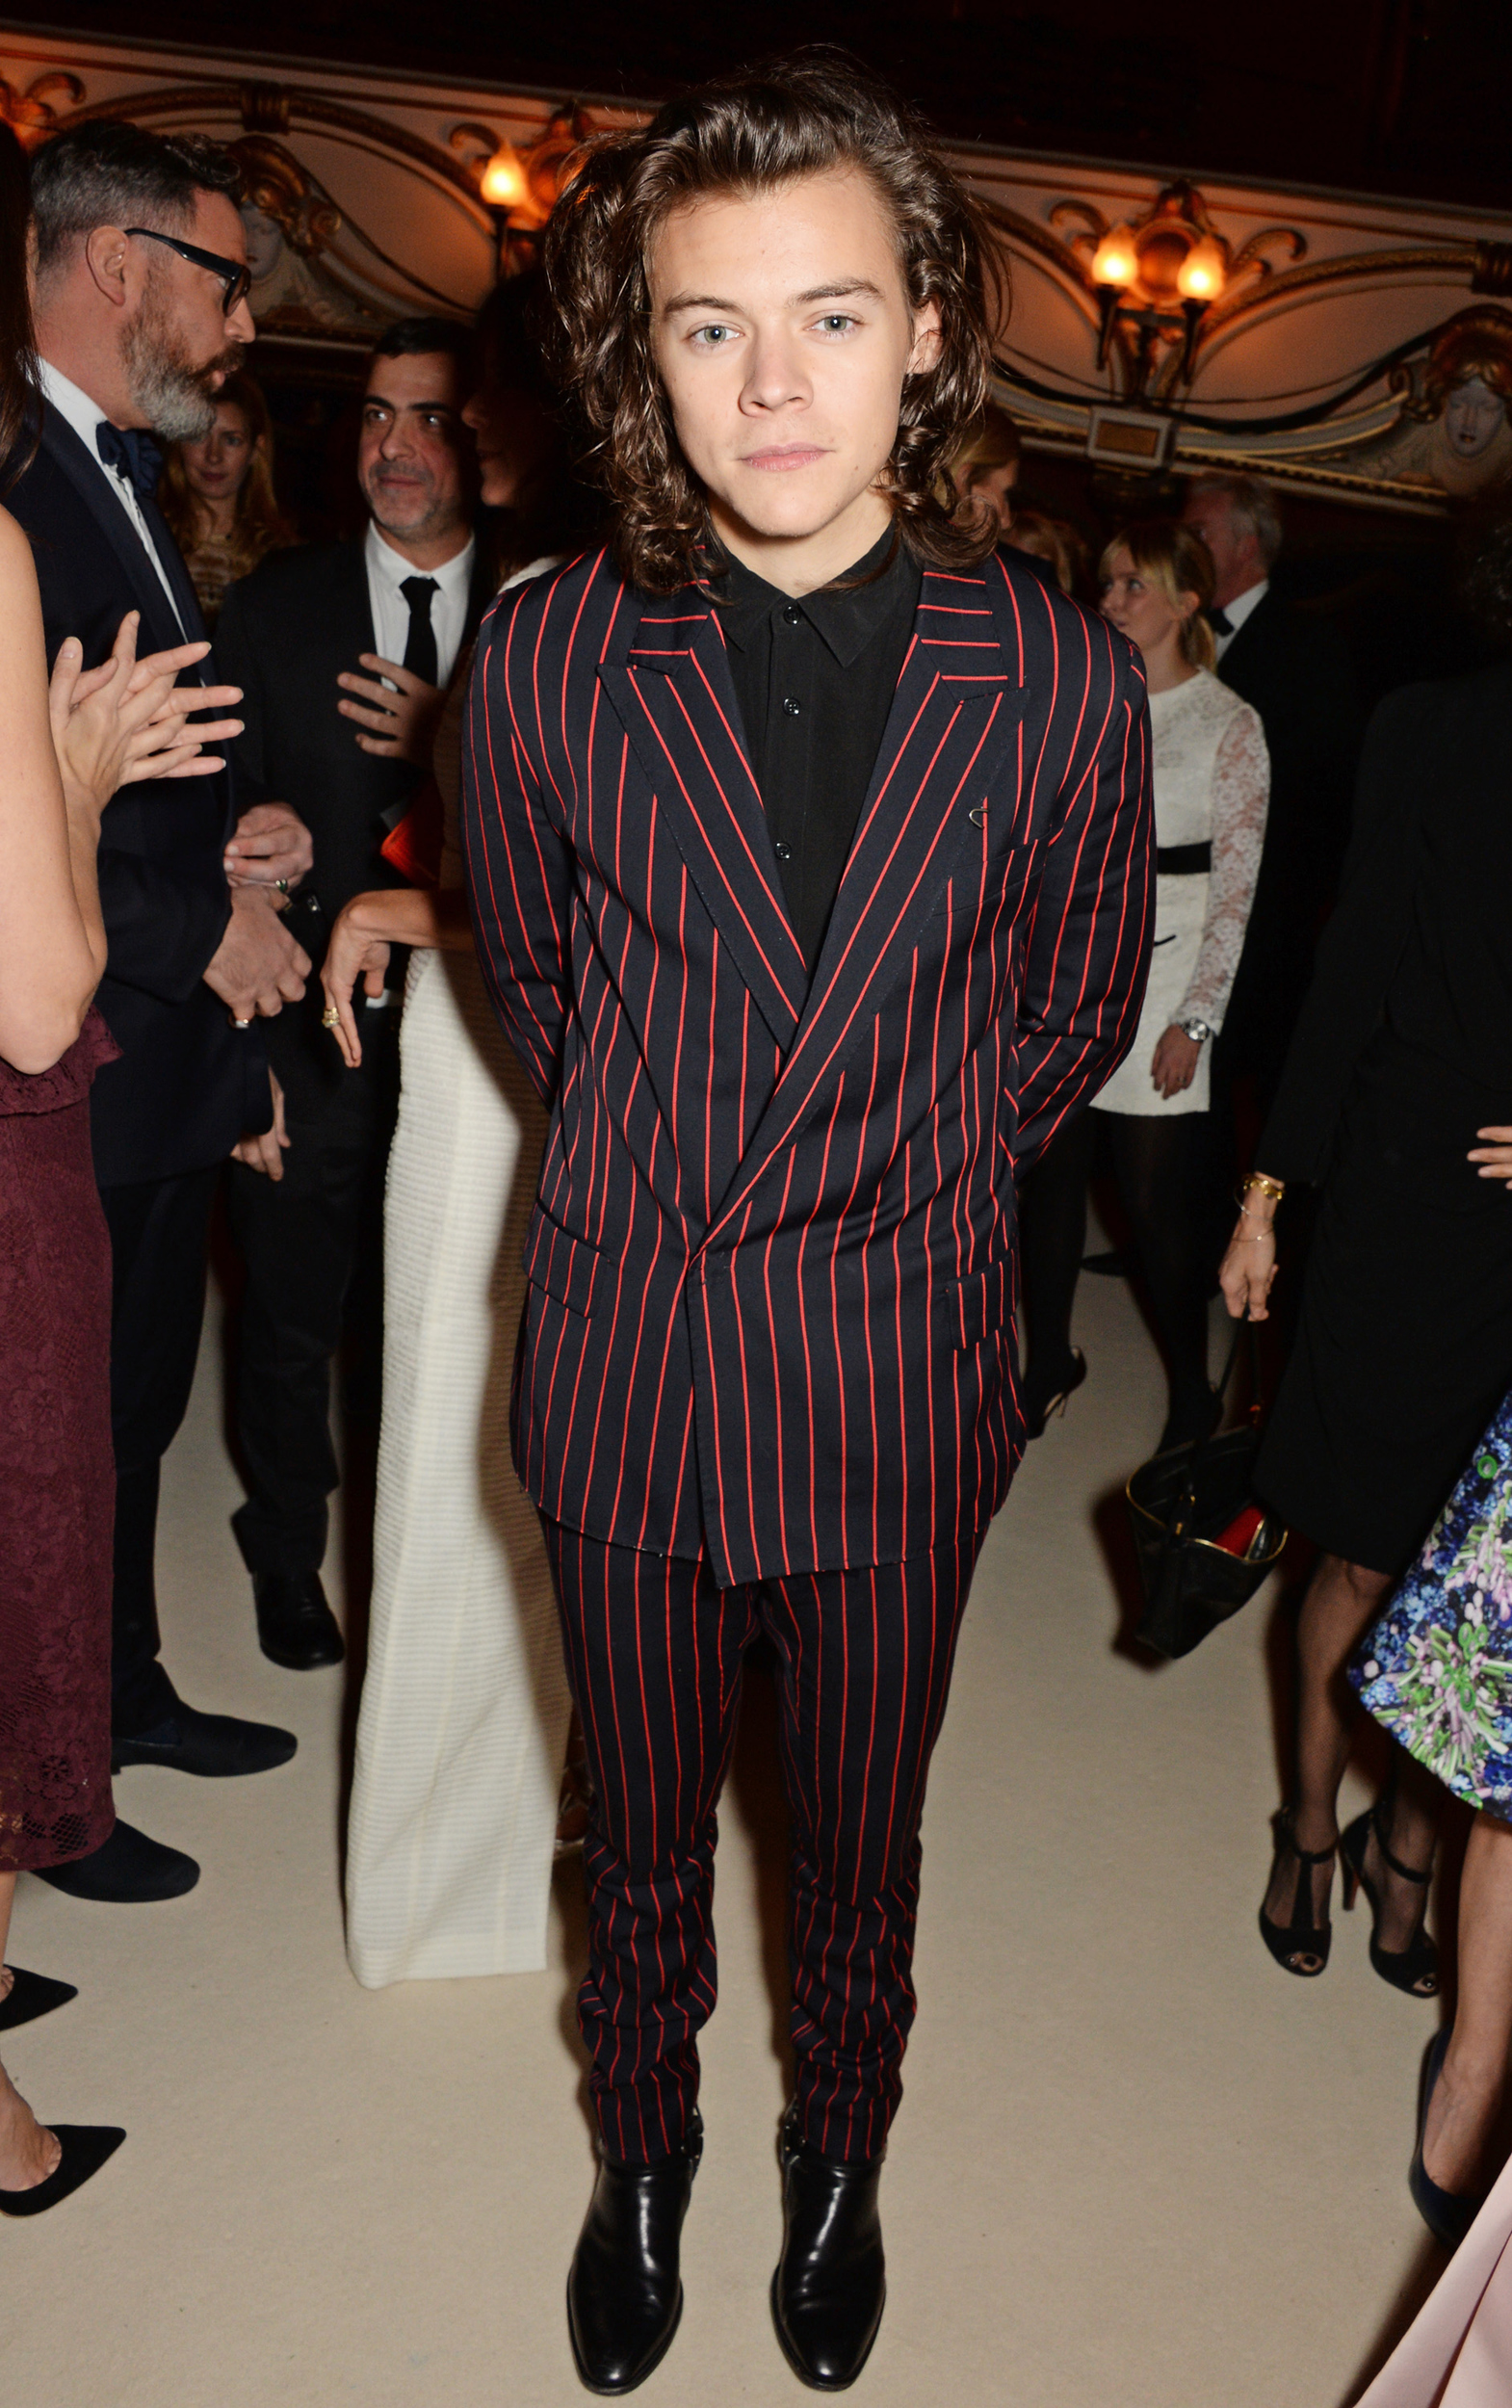 Harry Styles 39 2015 Love Predictions Getting Back Together With Taylor Swift Or Kendall Jenner